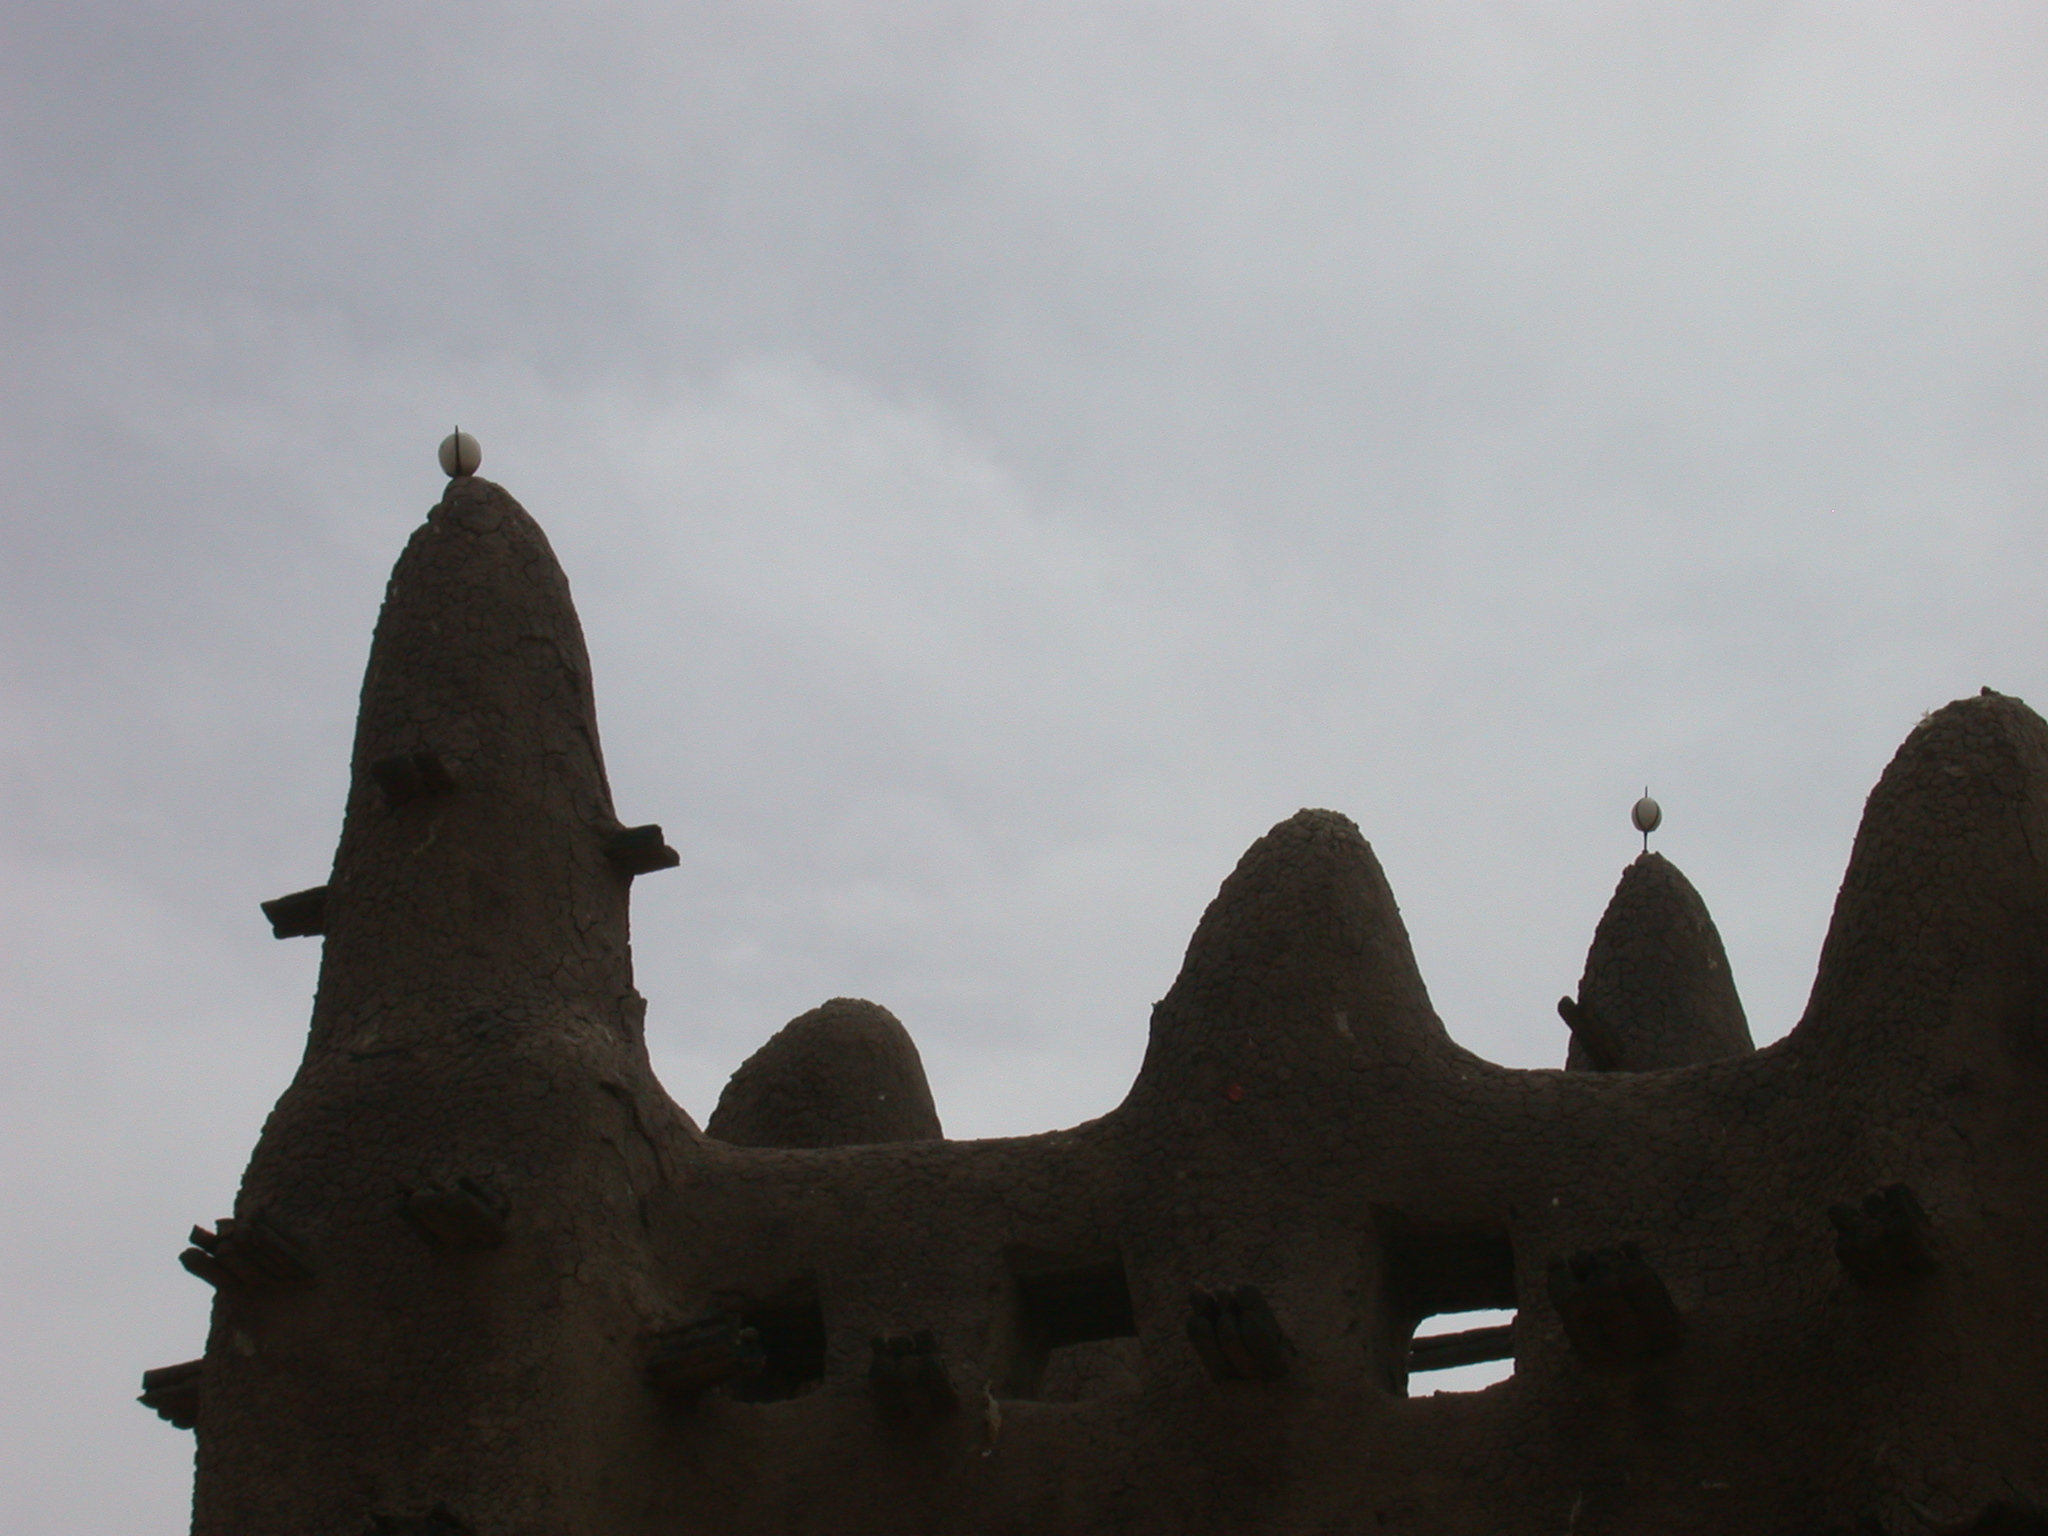 Ostrich Eggs on Minarets of Mosque in Jenne, Mali